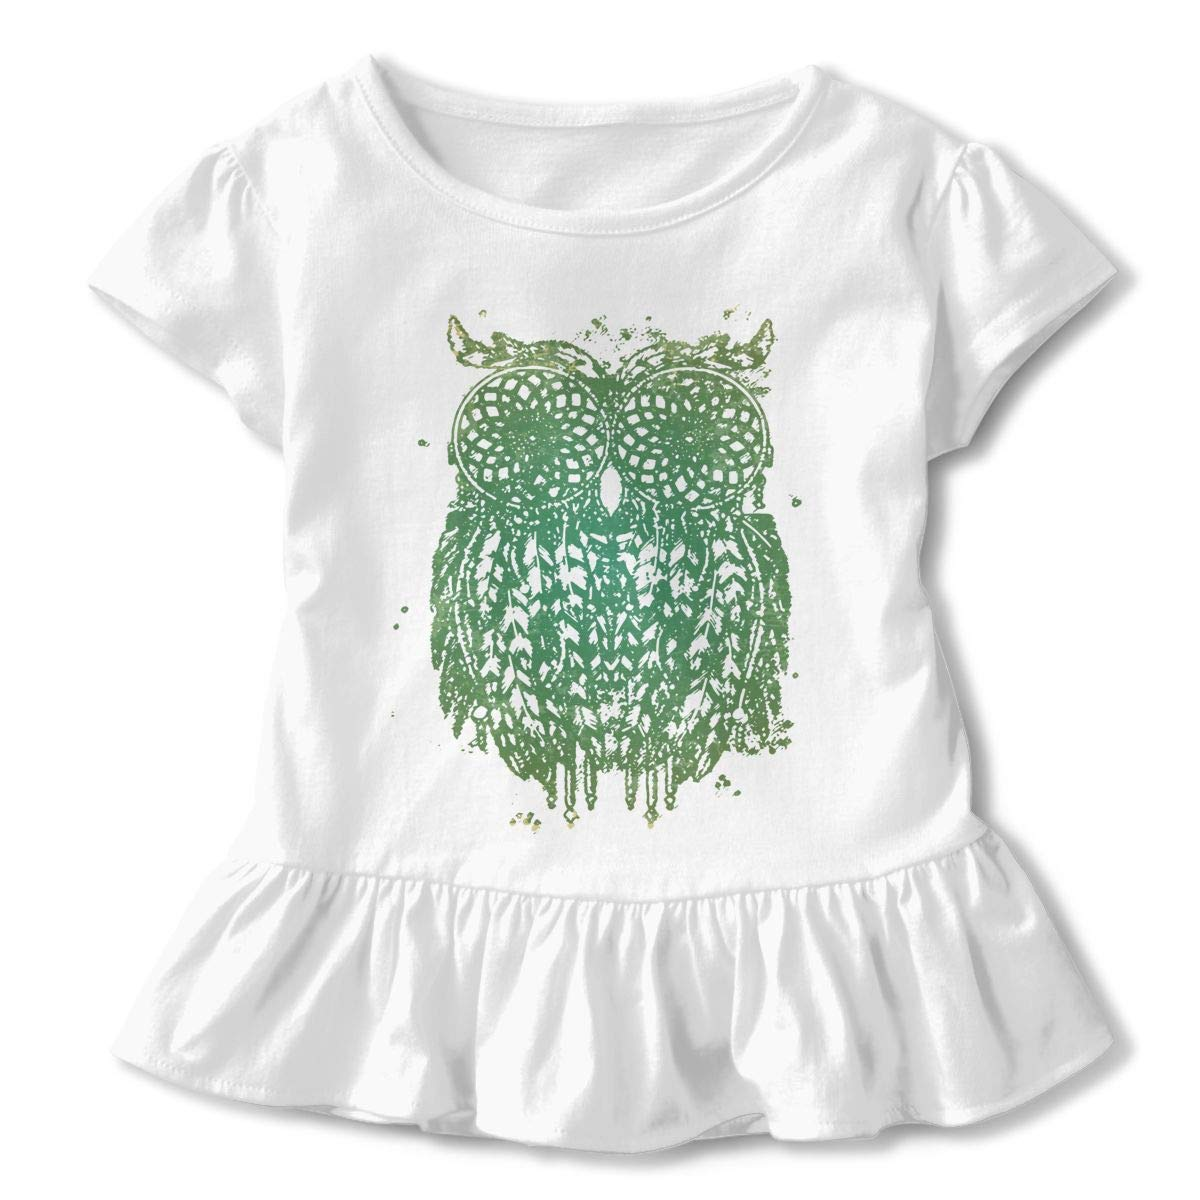 Owl Dream Catchers Toddler Baby Girls Short Sleeve Ruffle T-Shirt